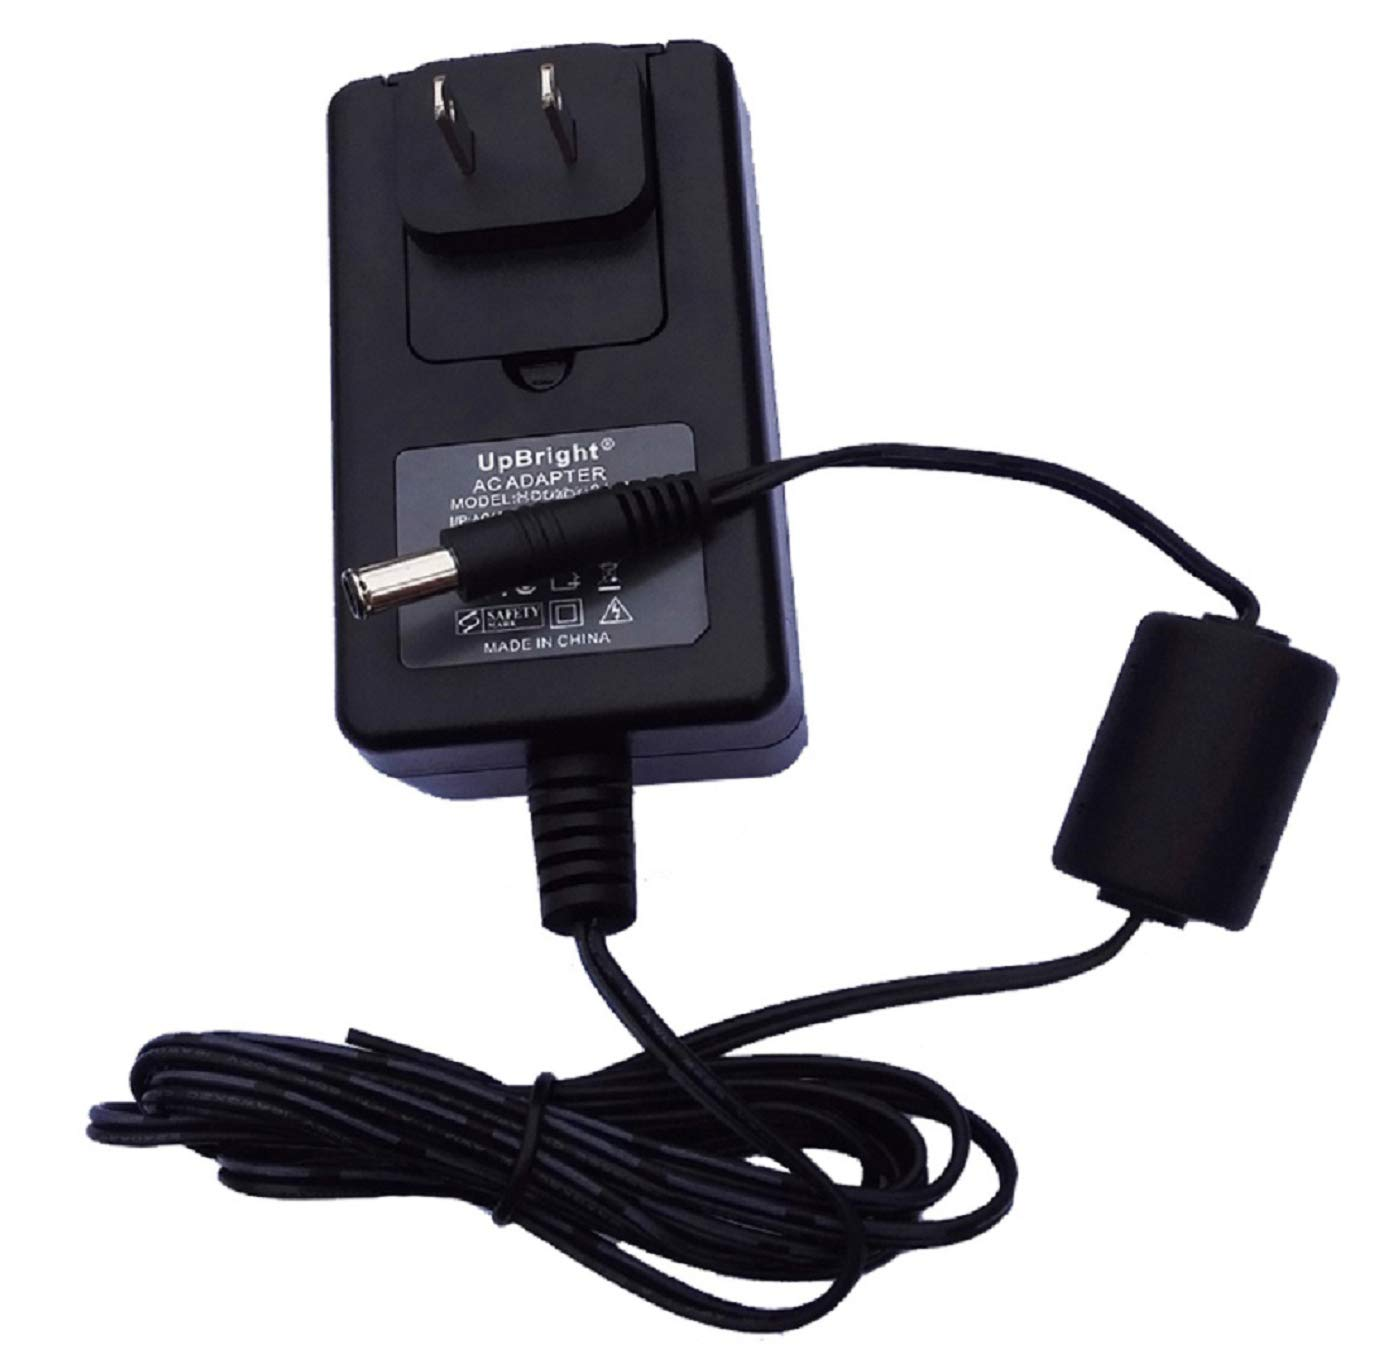 UpBright 12V AC//DC Adapter Replacement for LG Flatron 563LE L1780Q L1770HN LCD E2250T E2360V-PN E2350V Samsung PX2370 XL2370-1 SVP-5300 DSA-60W-12 1 12048 SAD03612A-UV Dell 1503FP PSCV360104A Power